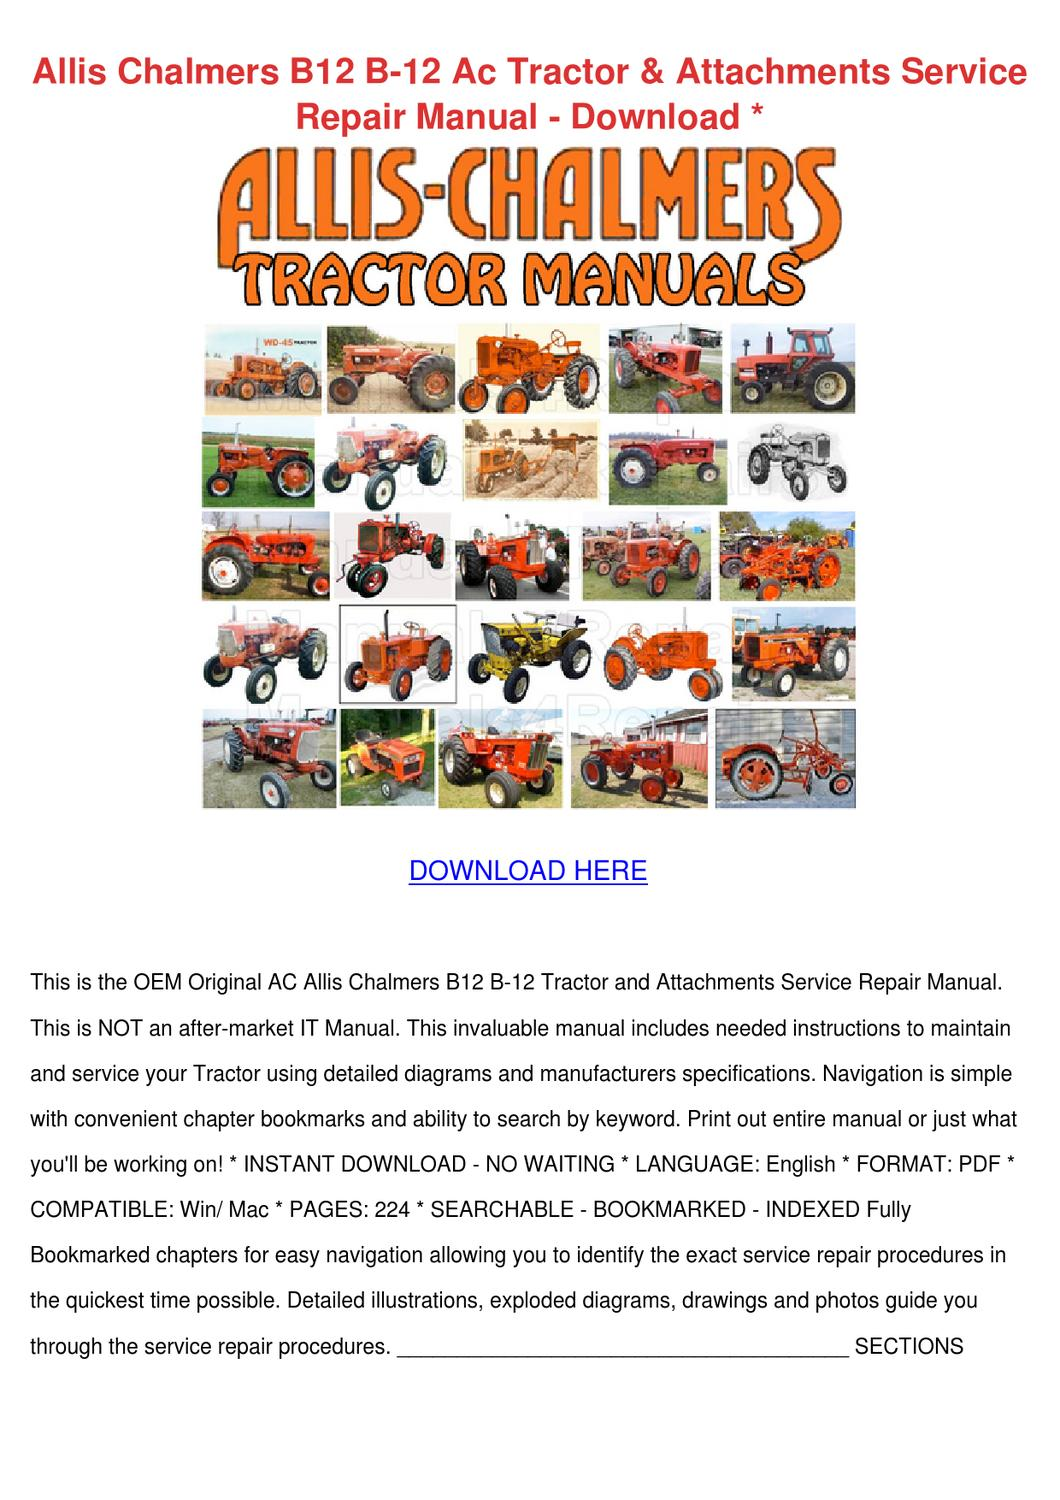 Wiring Diagram Allis Chalmers B12 Electrical Diagrams 200 B 12 Ac Tractor Attachment By Johnette Pamphile Engine